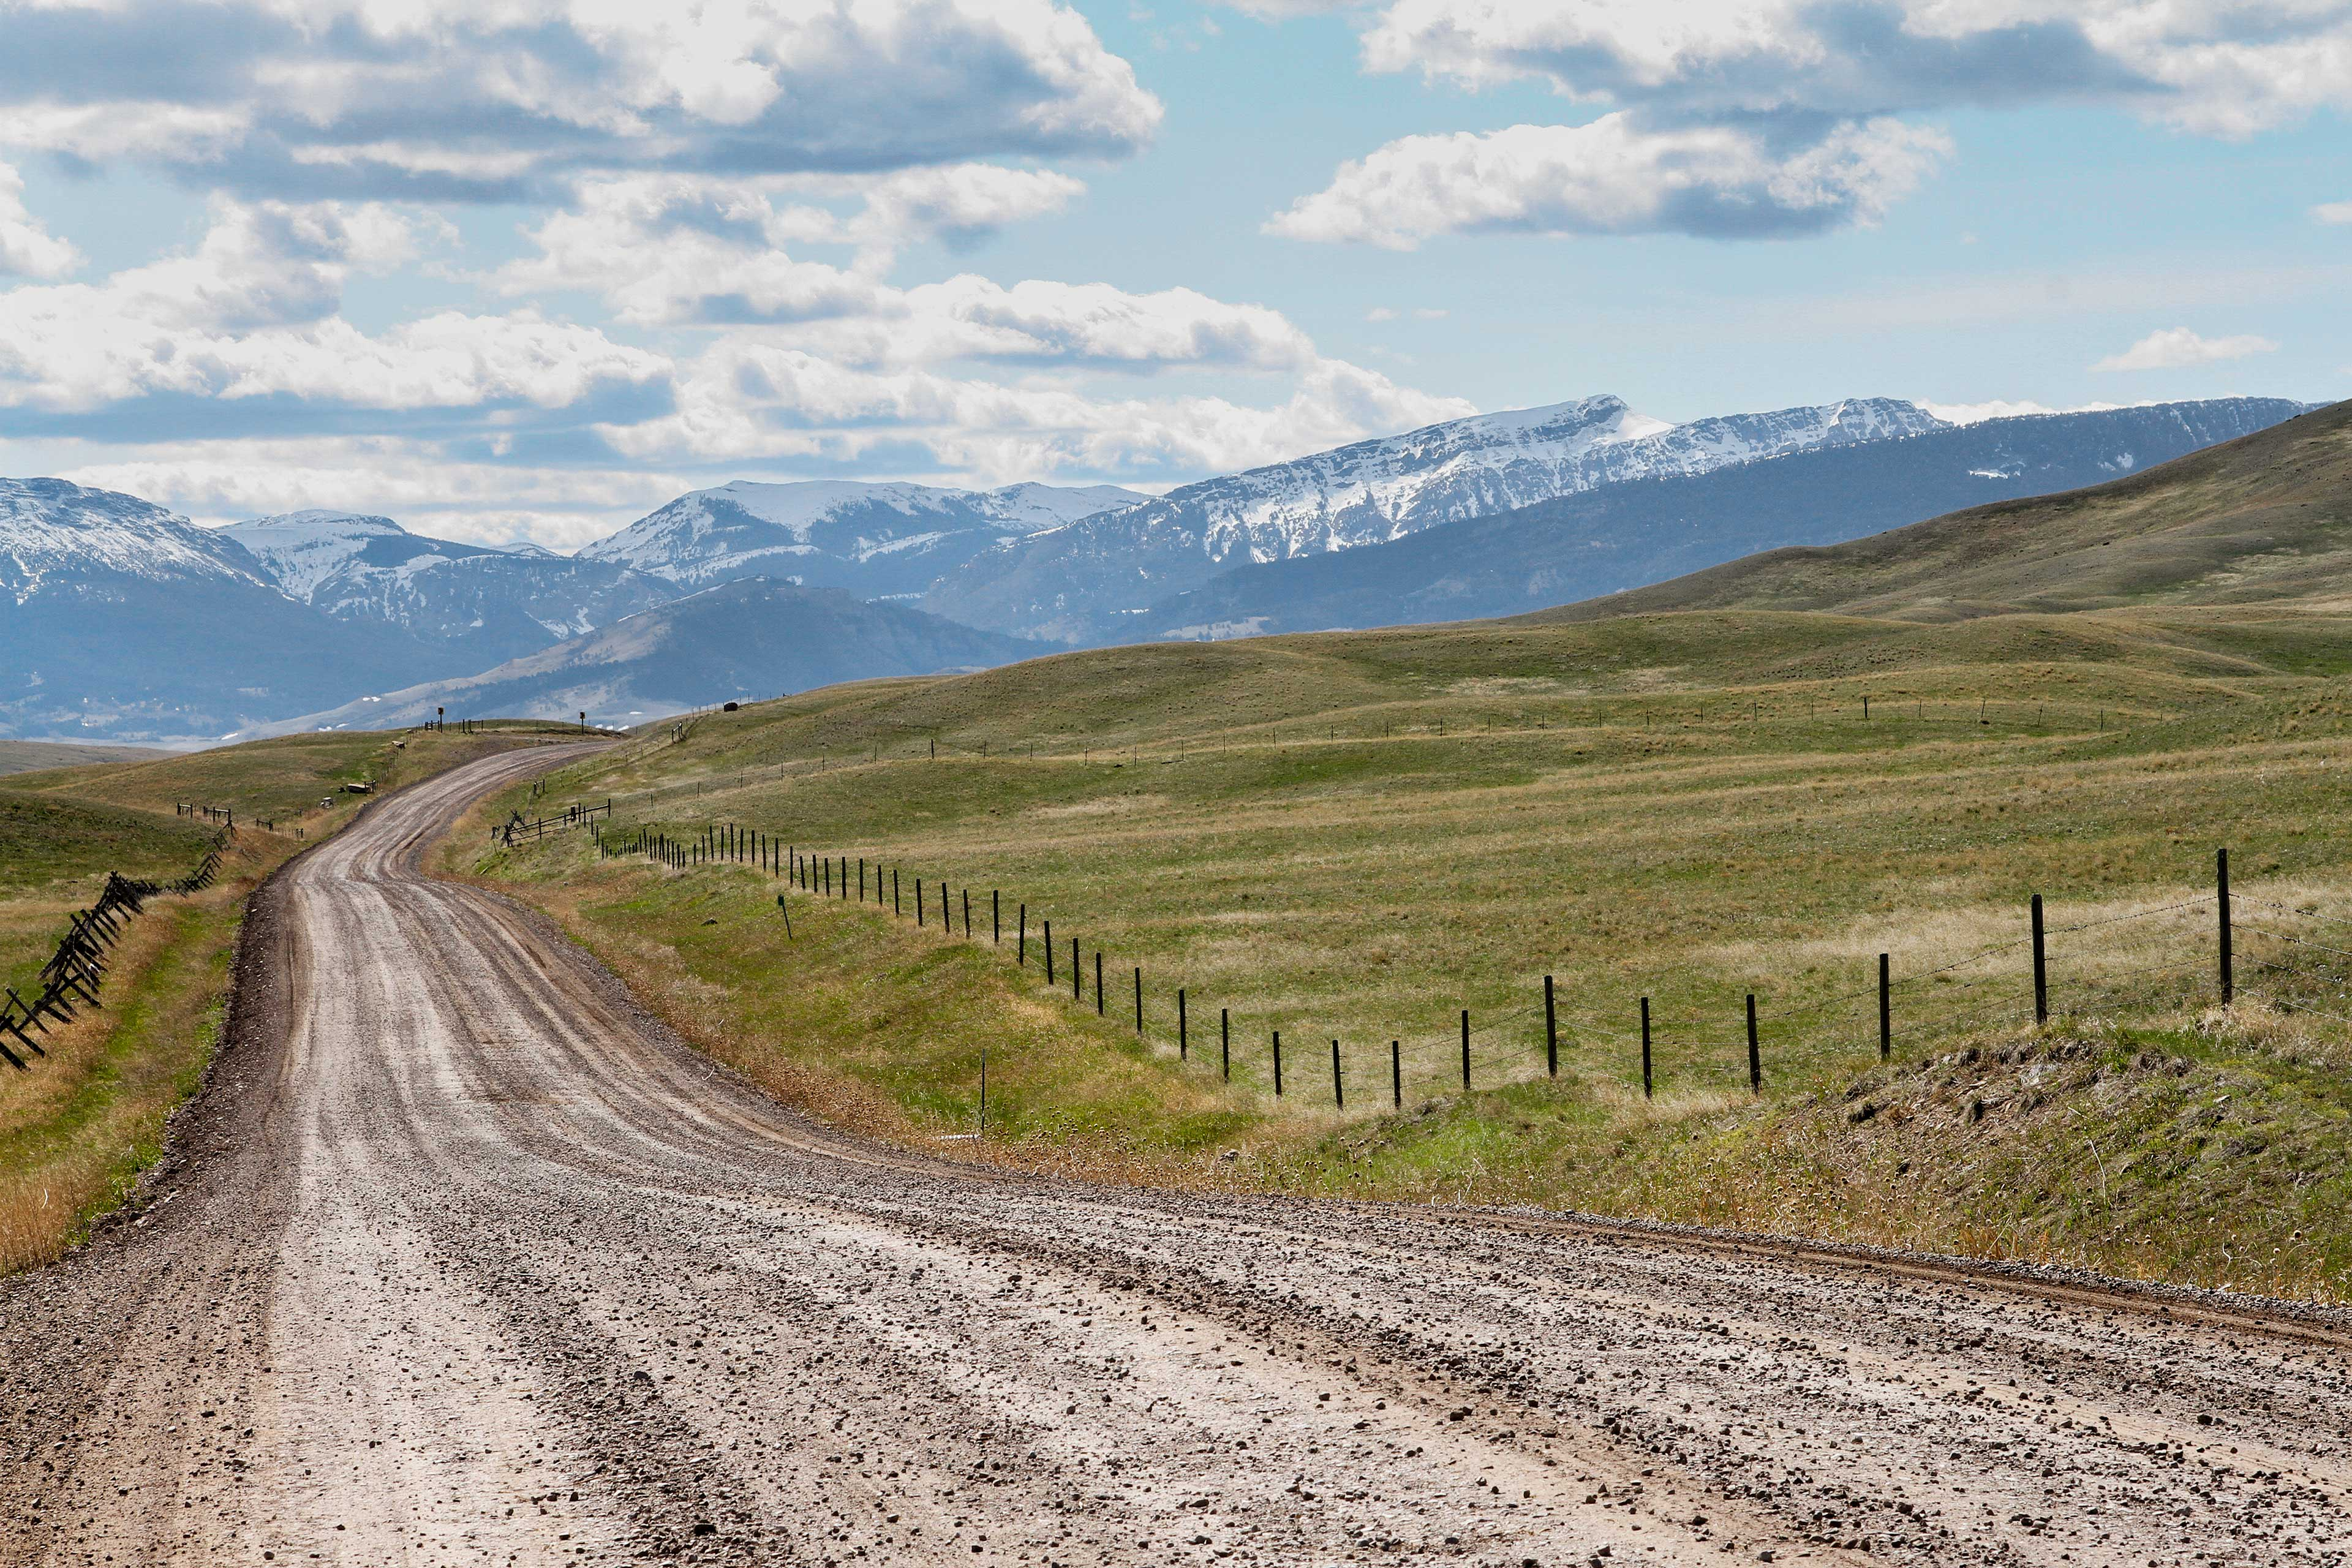 The Montana landscape is truly breathtaking.